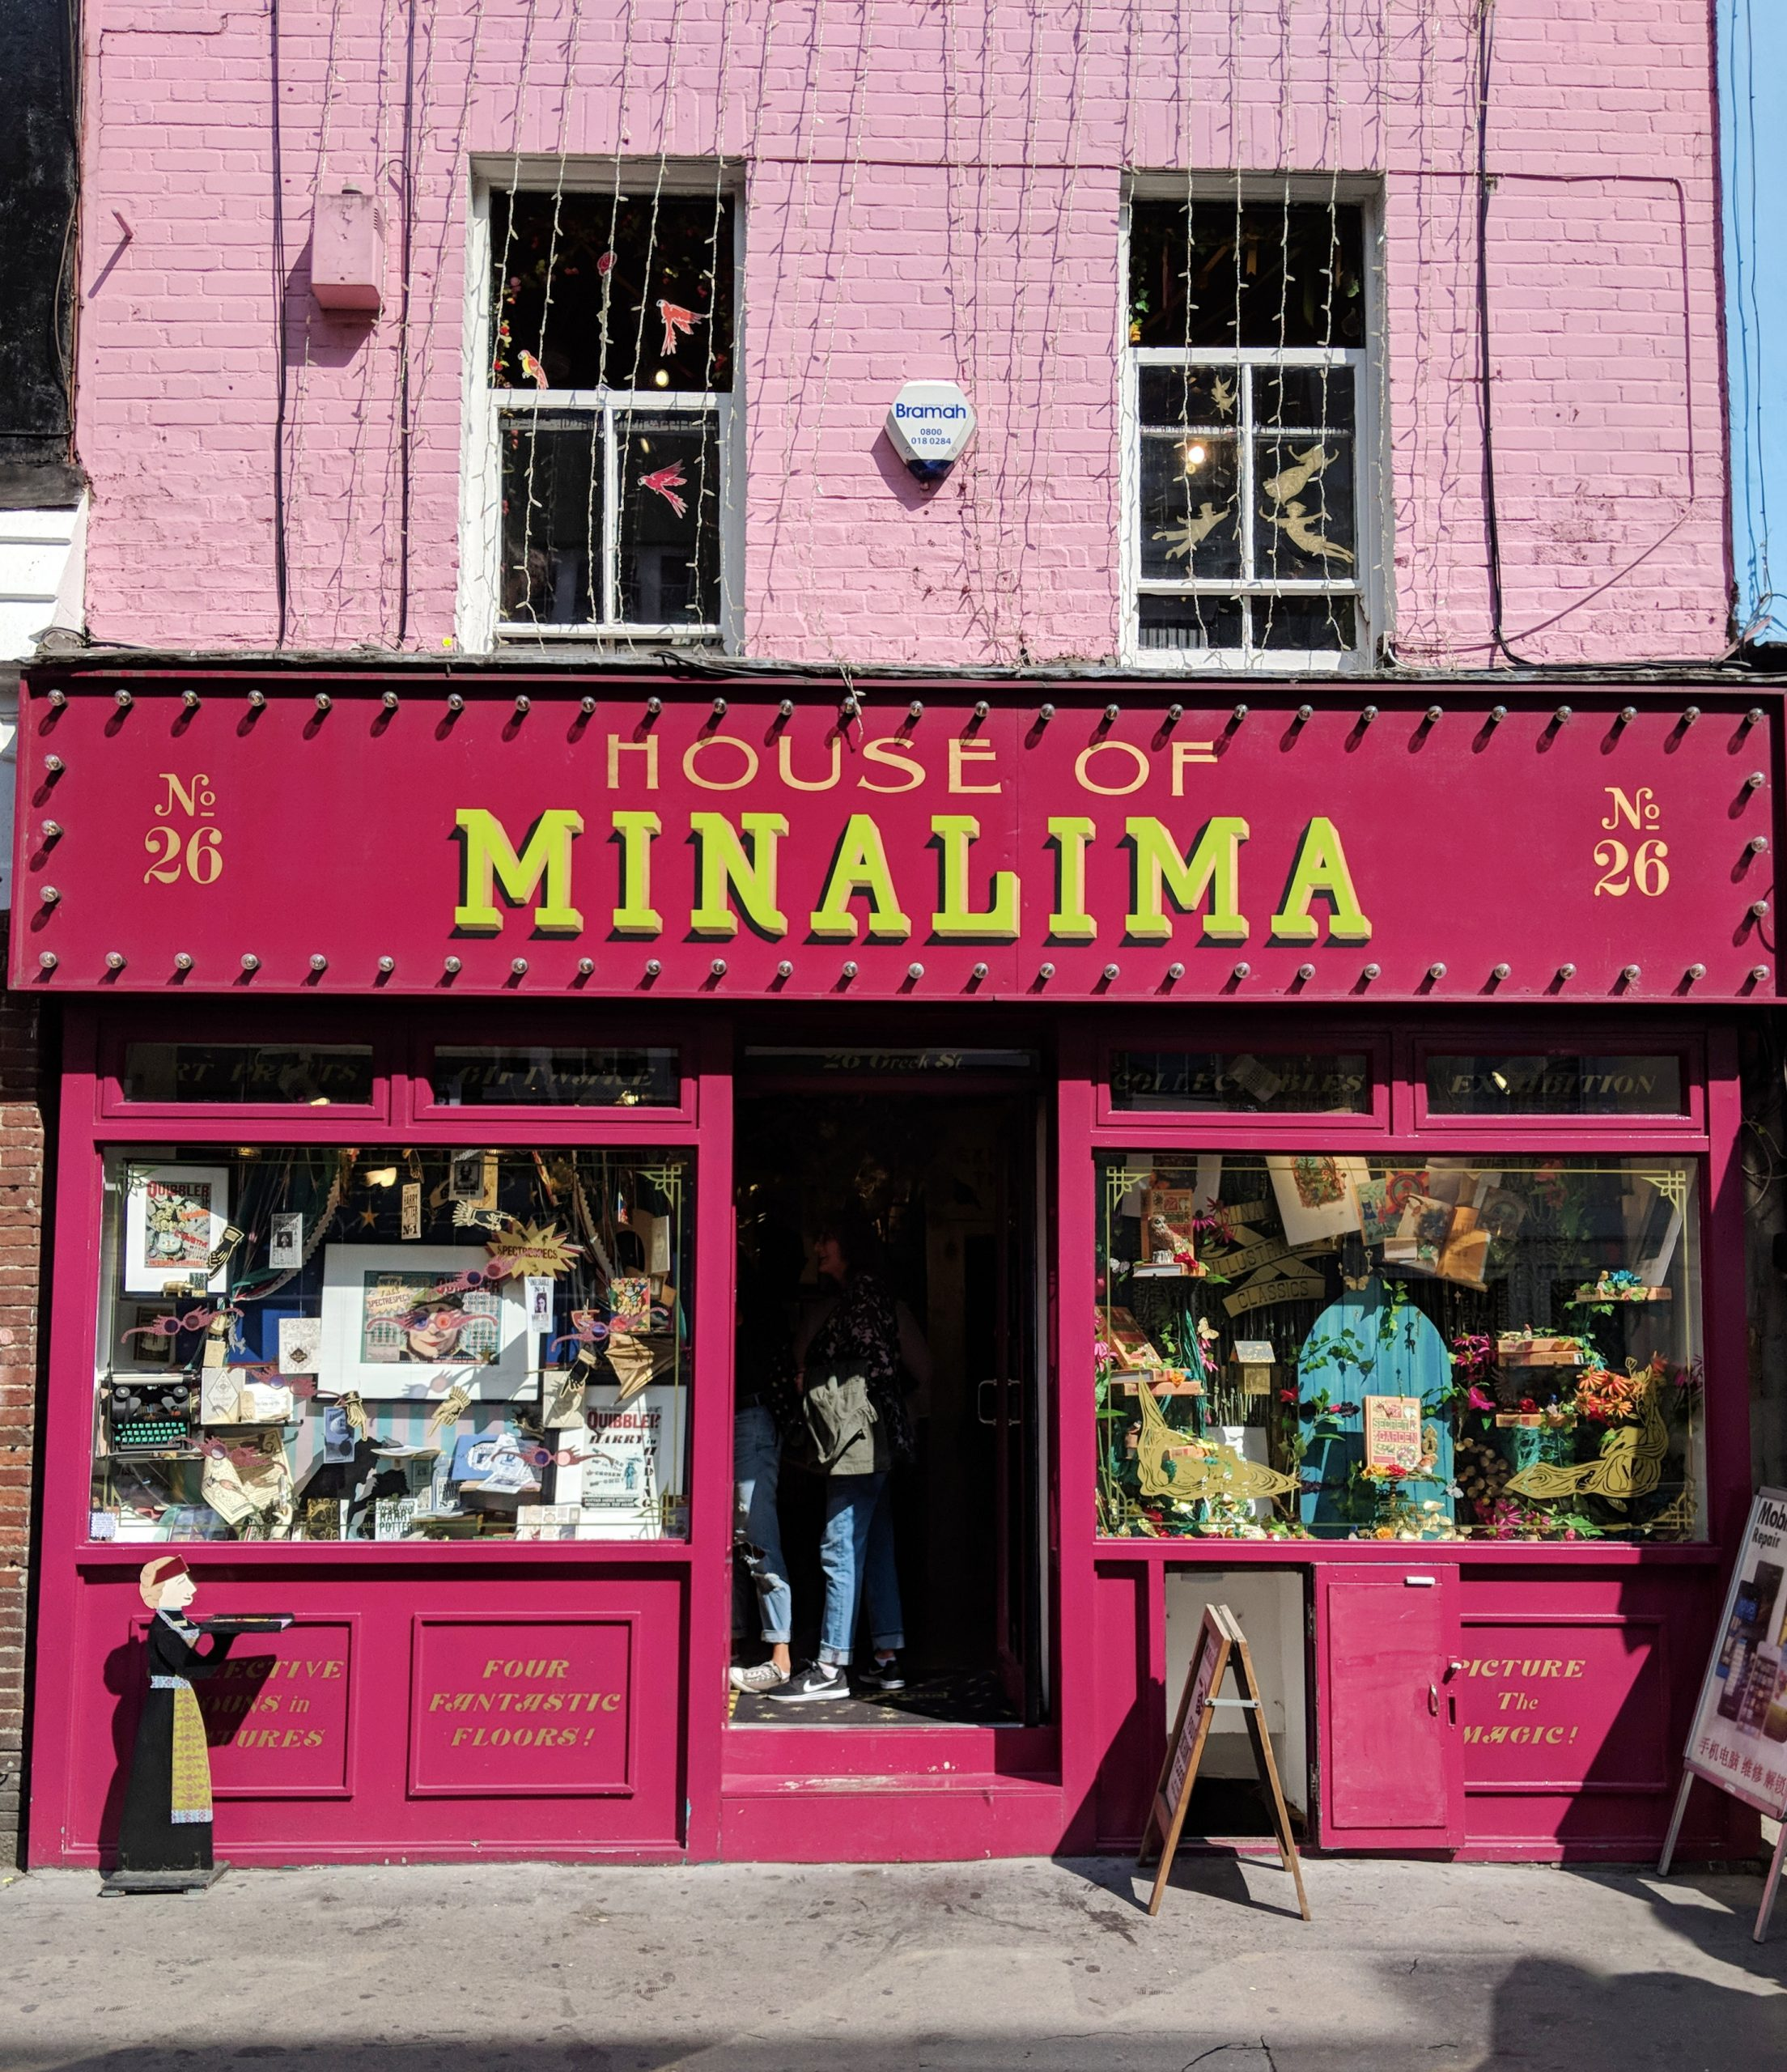 The House of MinaLima